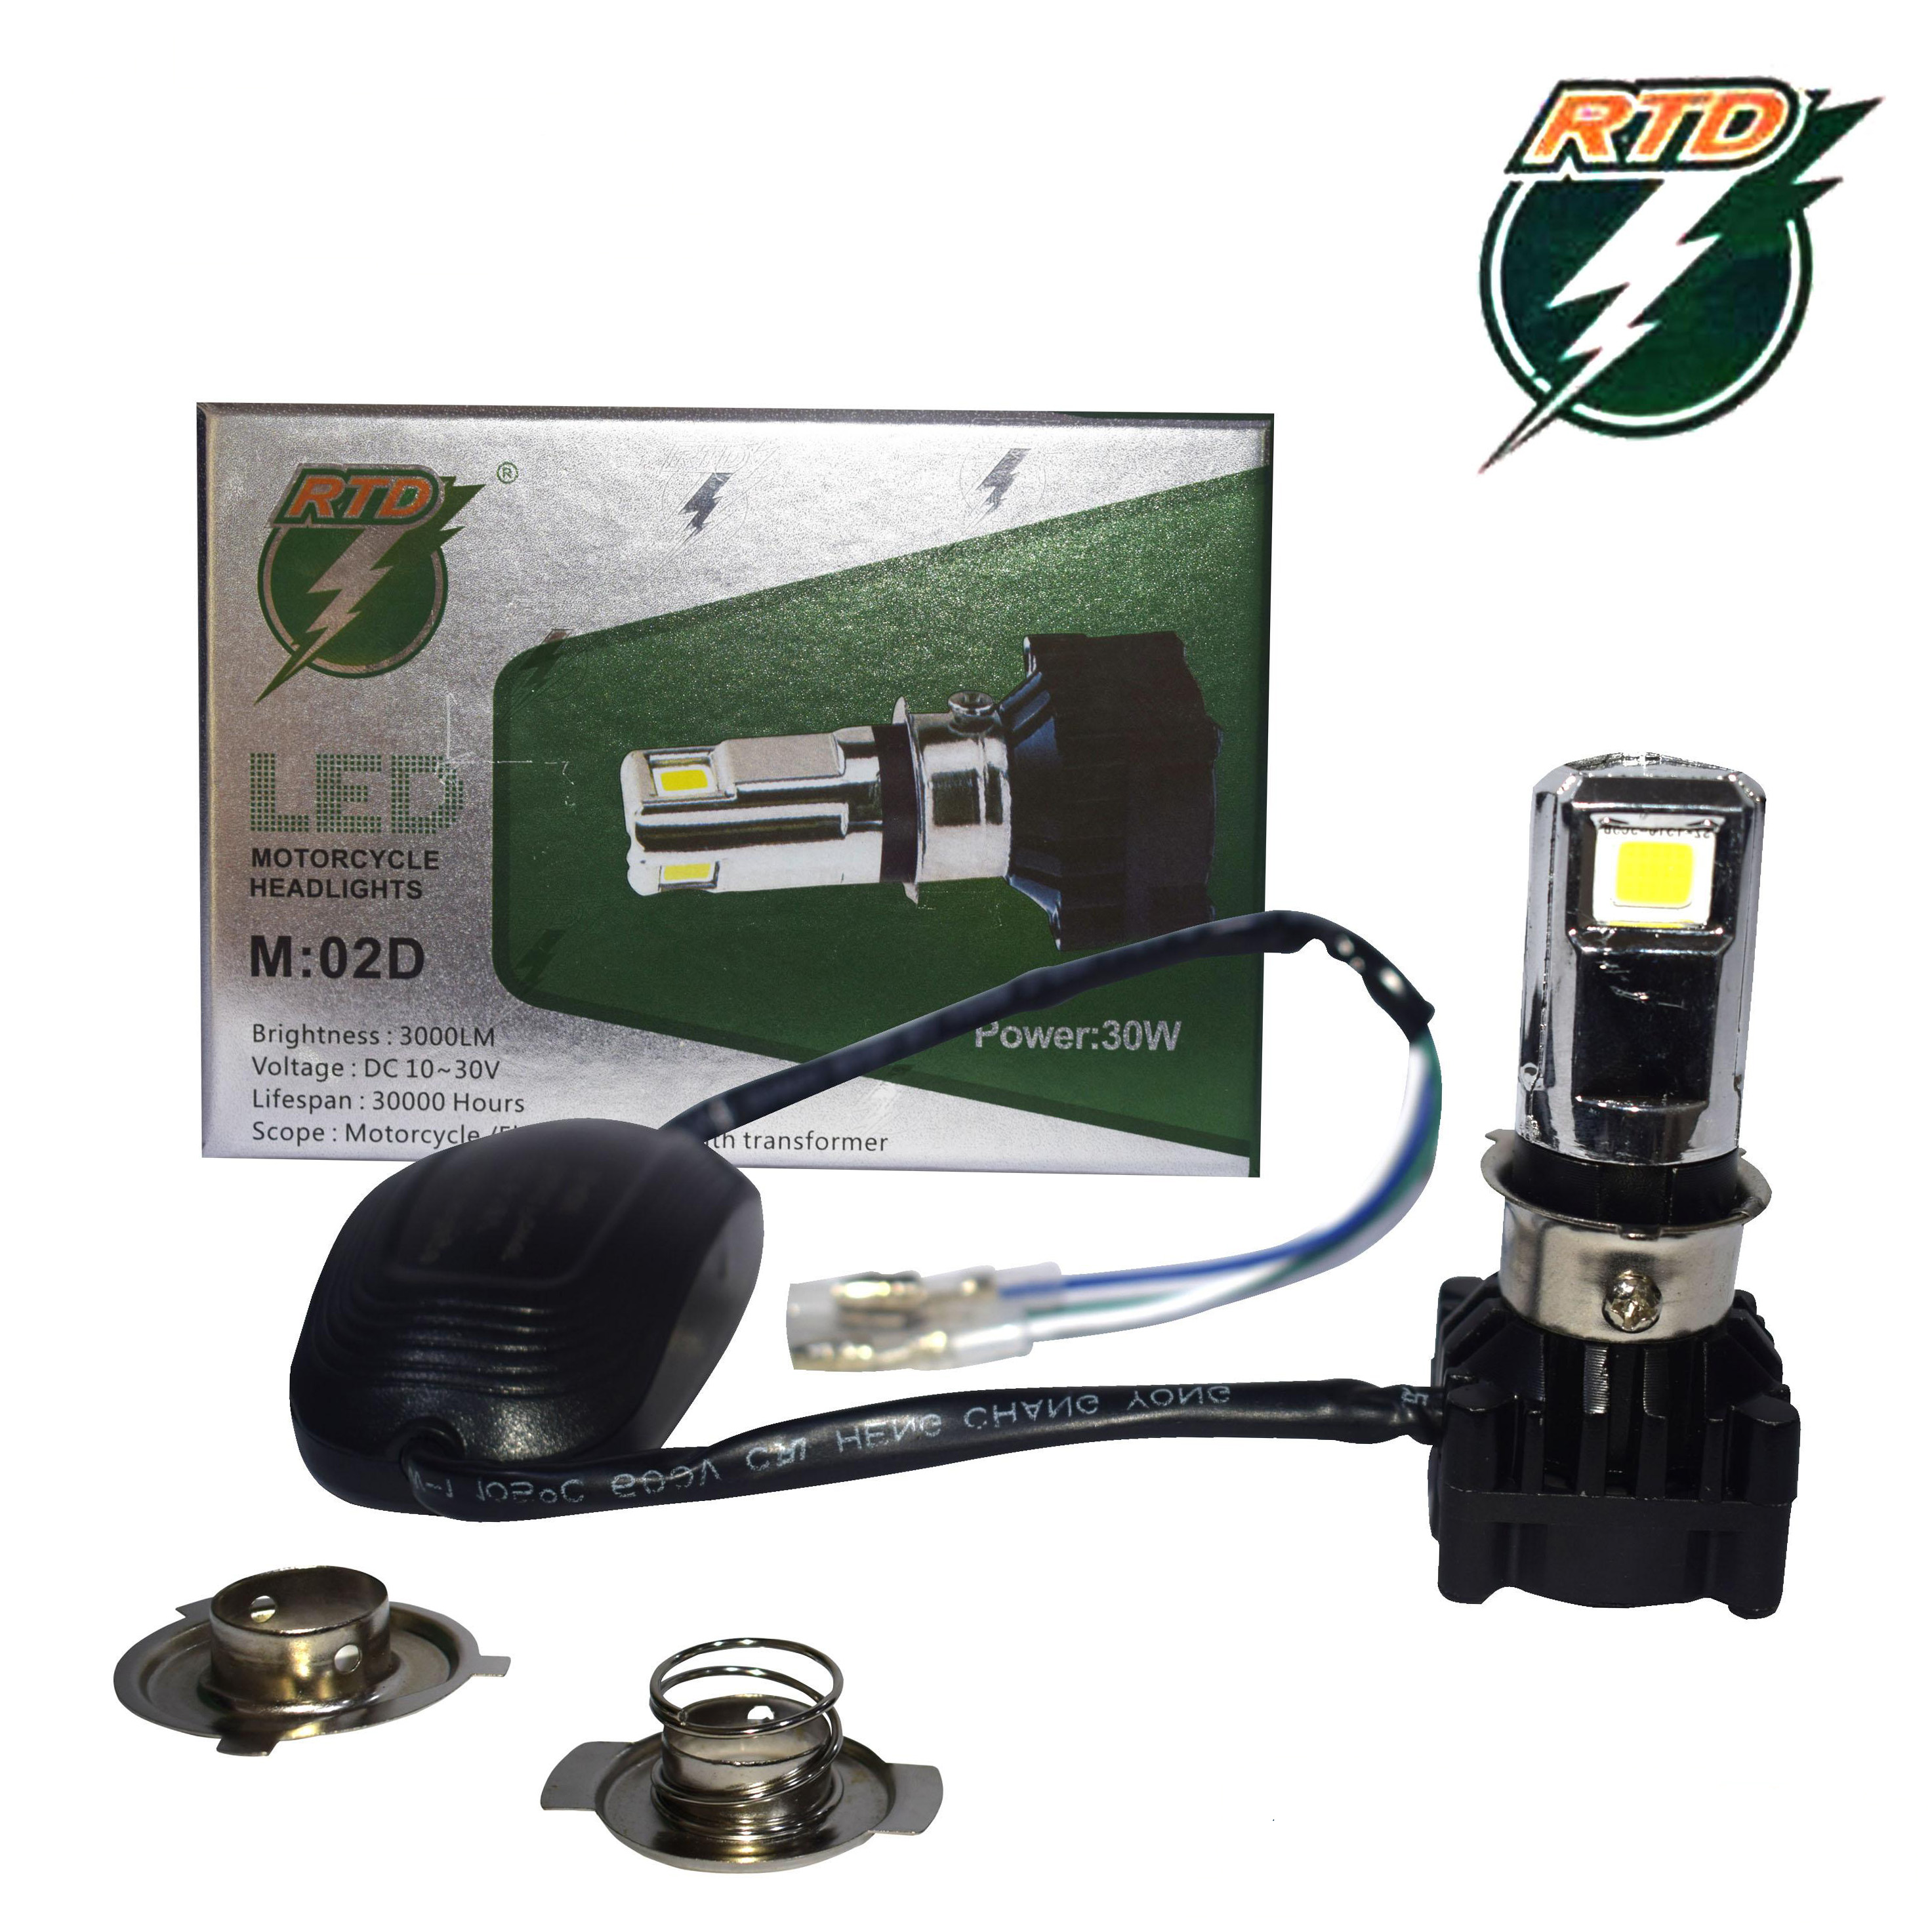 ΦΩΤΑ ΜΗΧΑΝΗΣ RTD MOTORCYCLE LED HEADLAMP